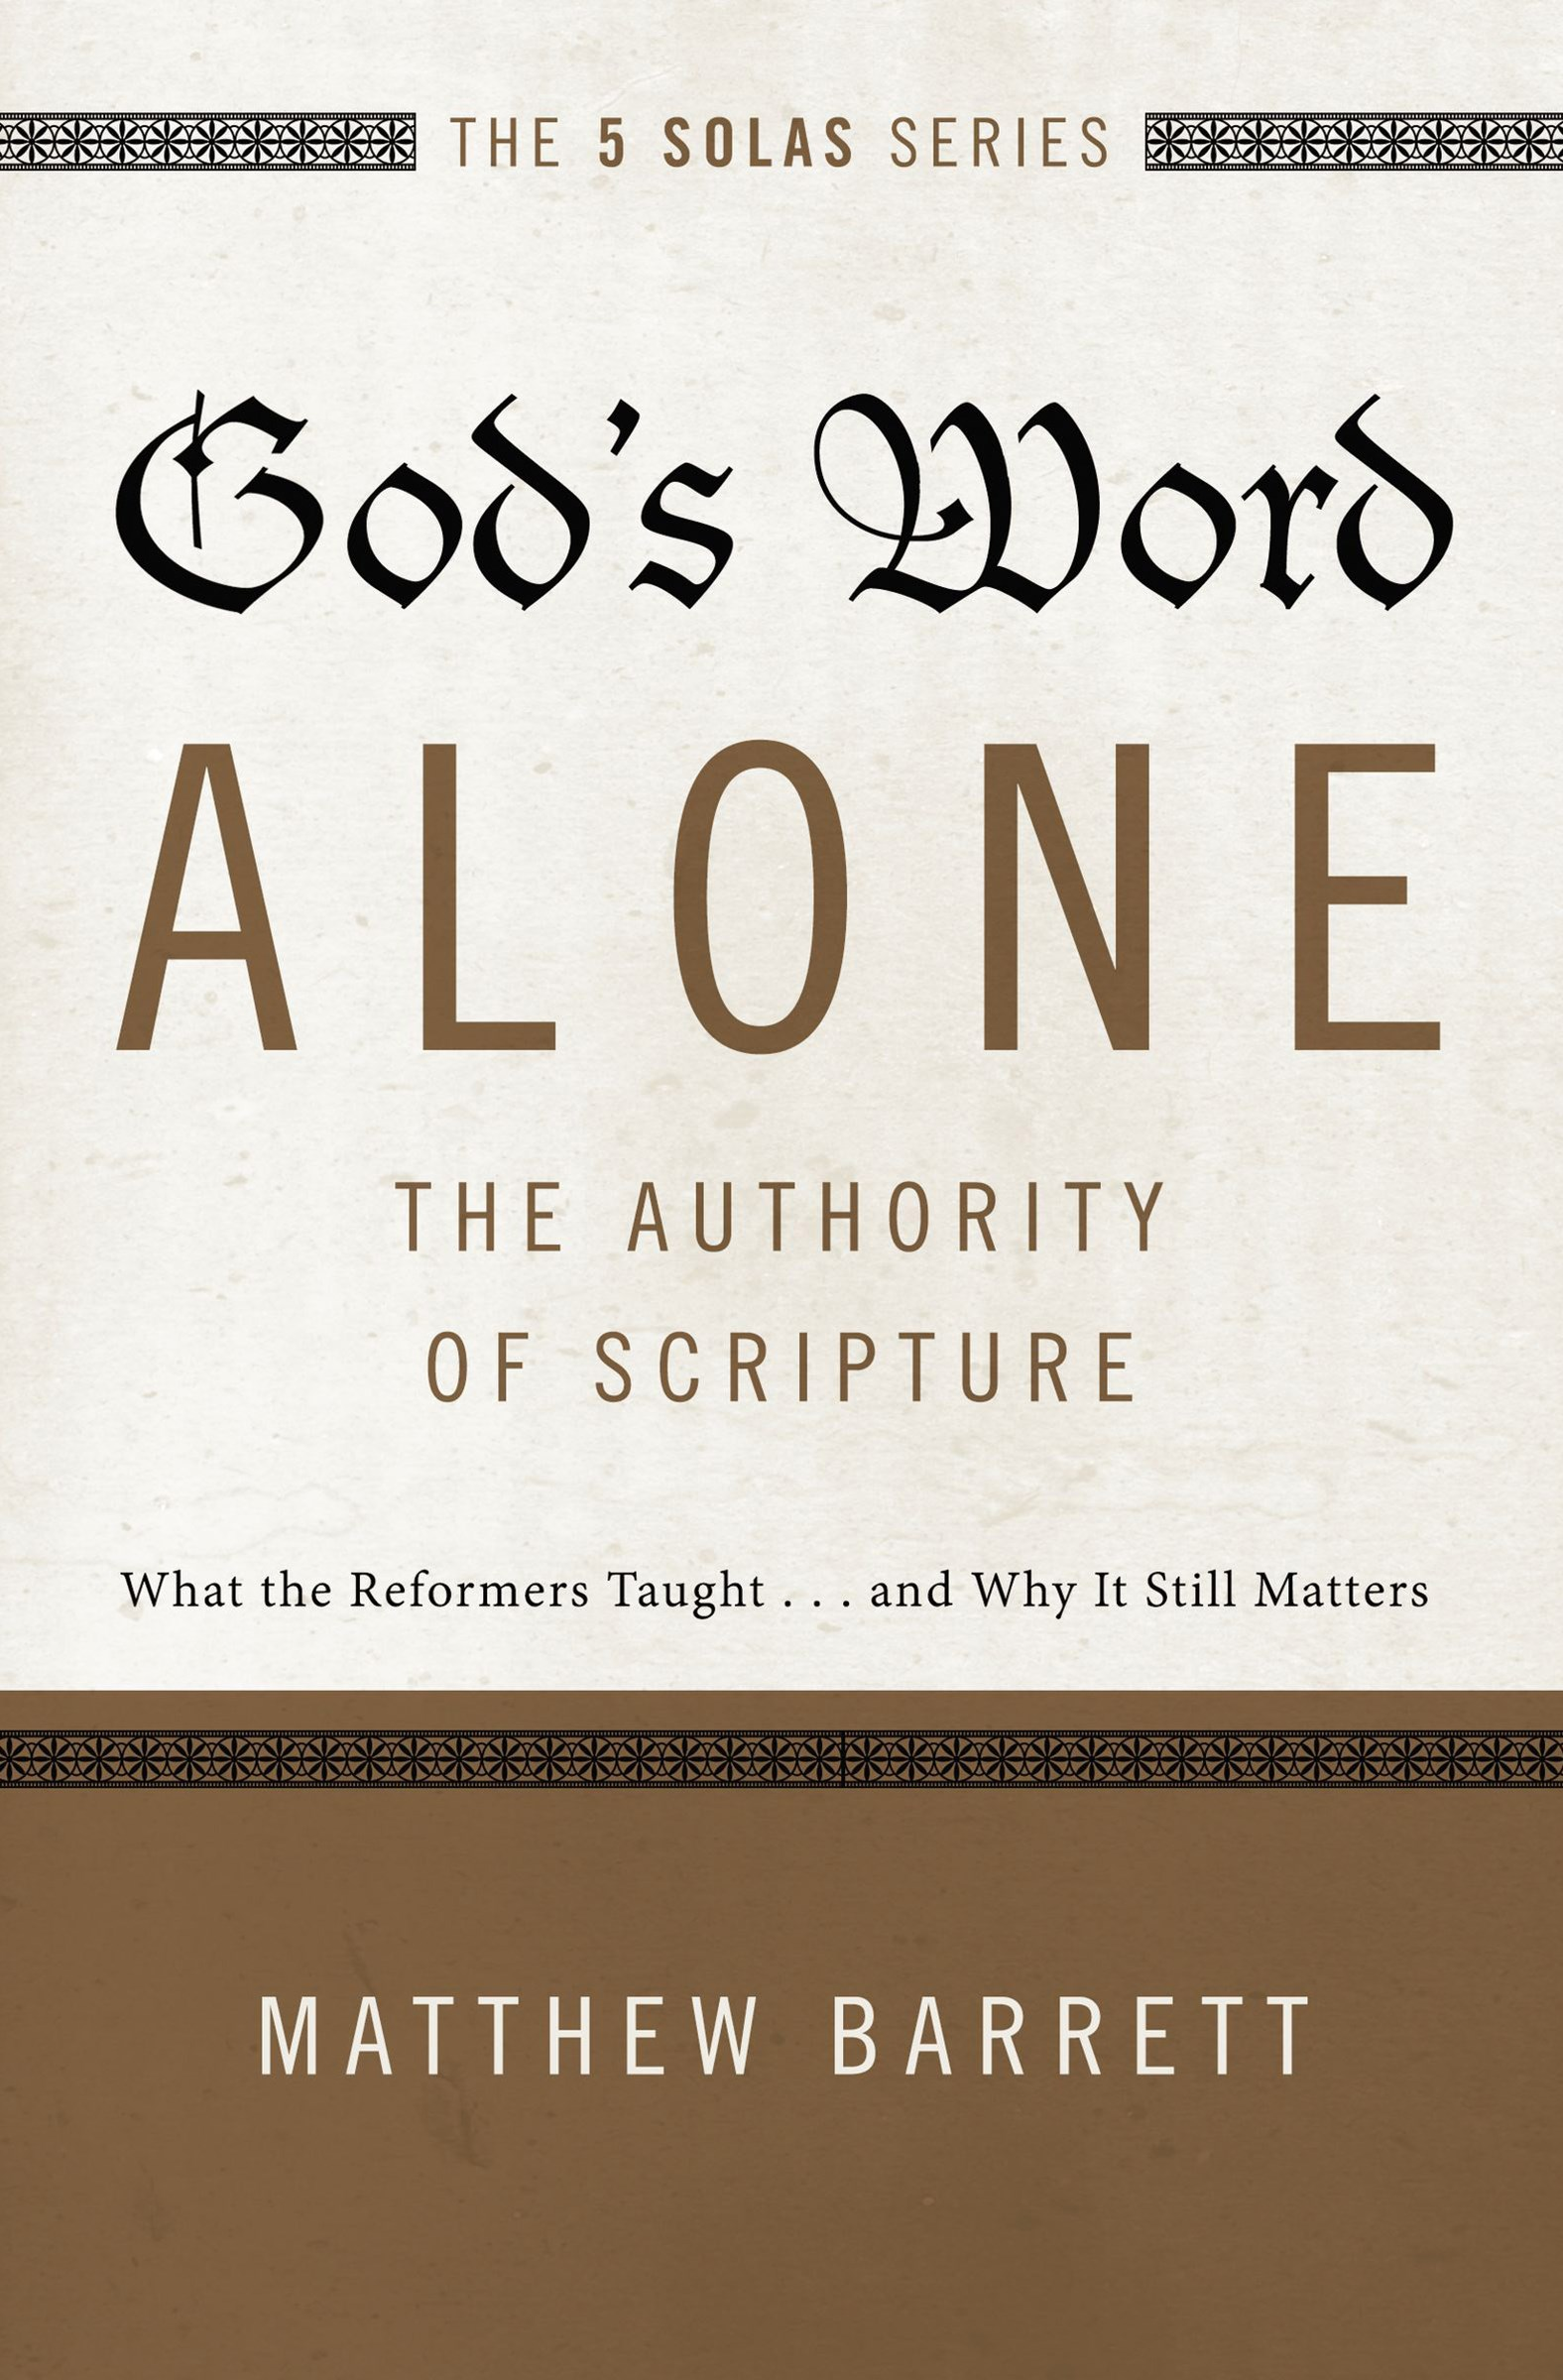 God's Word Alone - The Authority Of Scripture: What The Reformers Taught...and Why It Still Matters